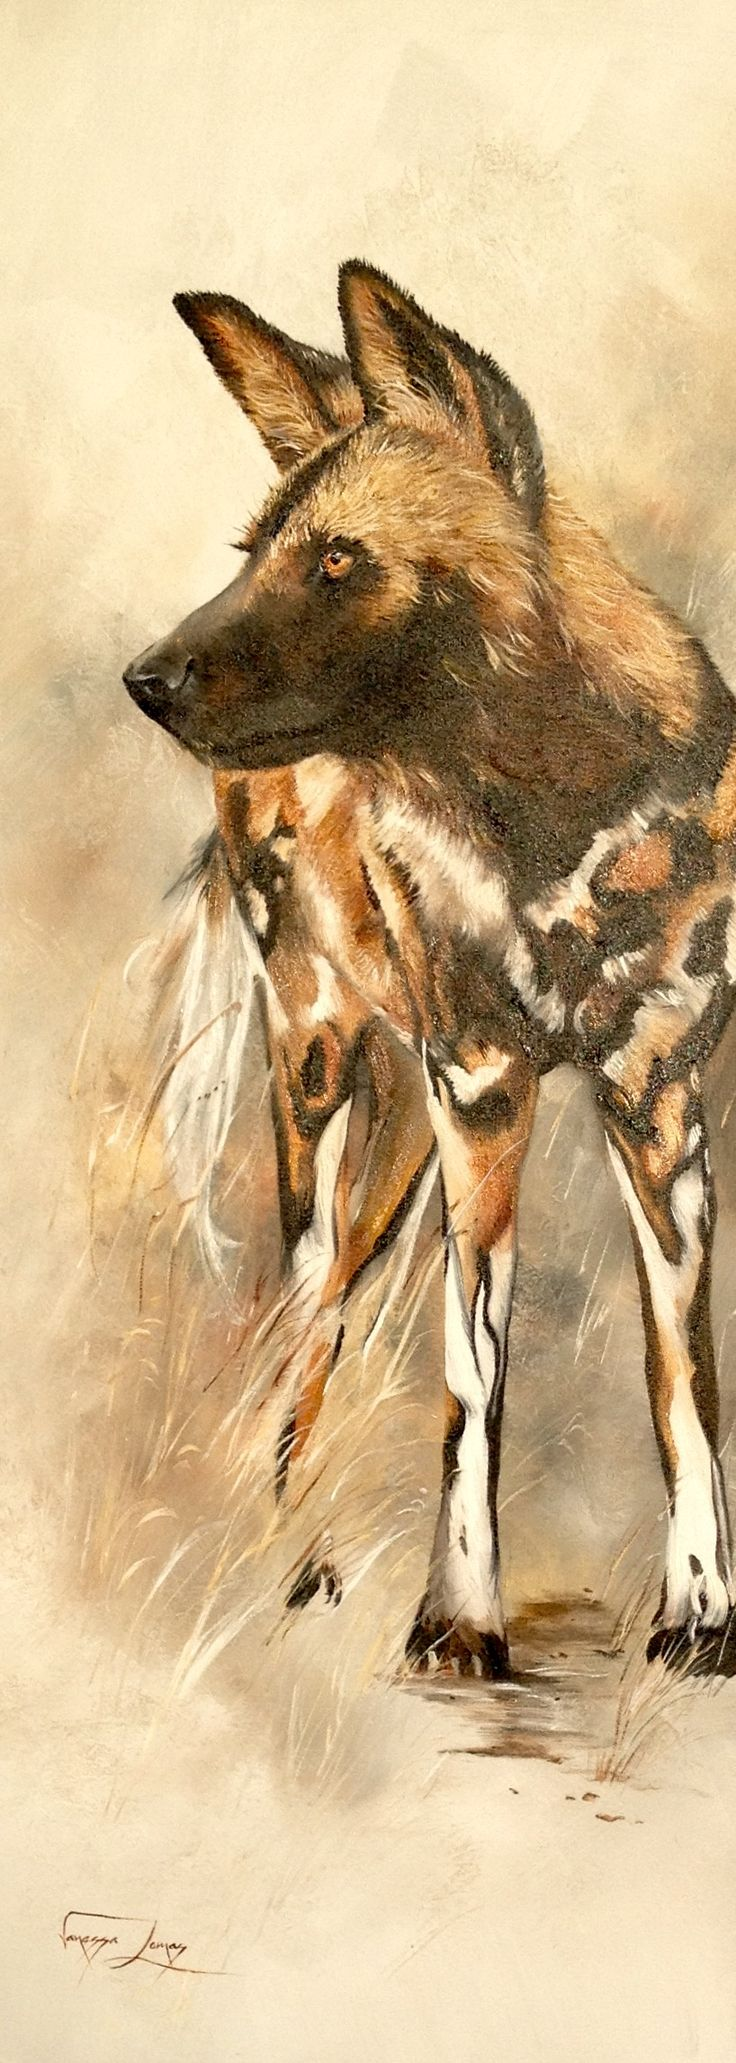 Wild dog, 46 X 121 cm, oil on canvas. Also known as the Cape hunting dog or the painted dog.